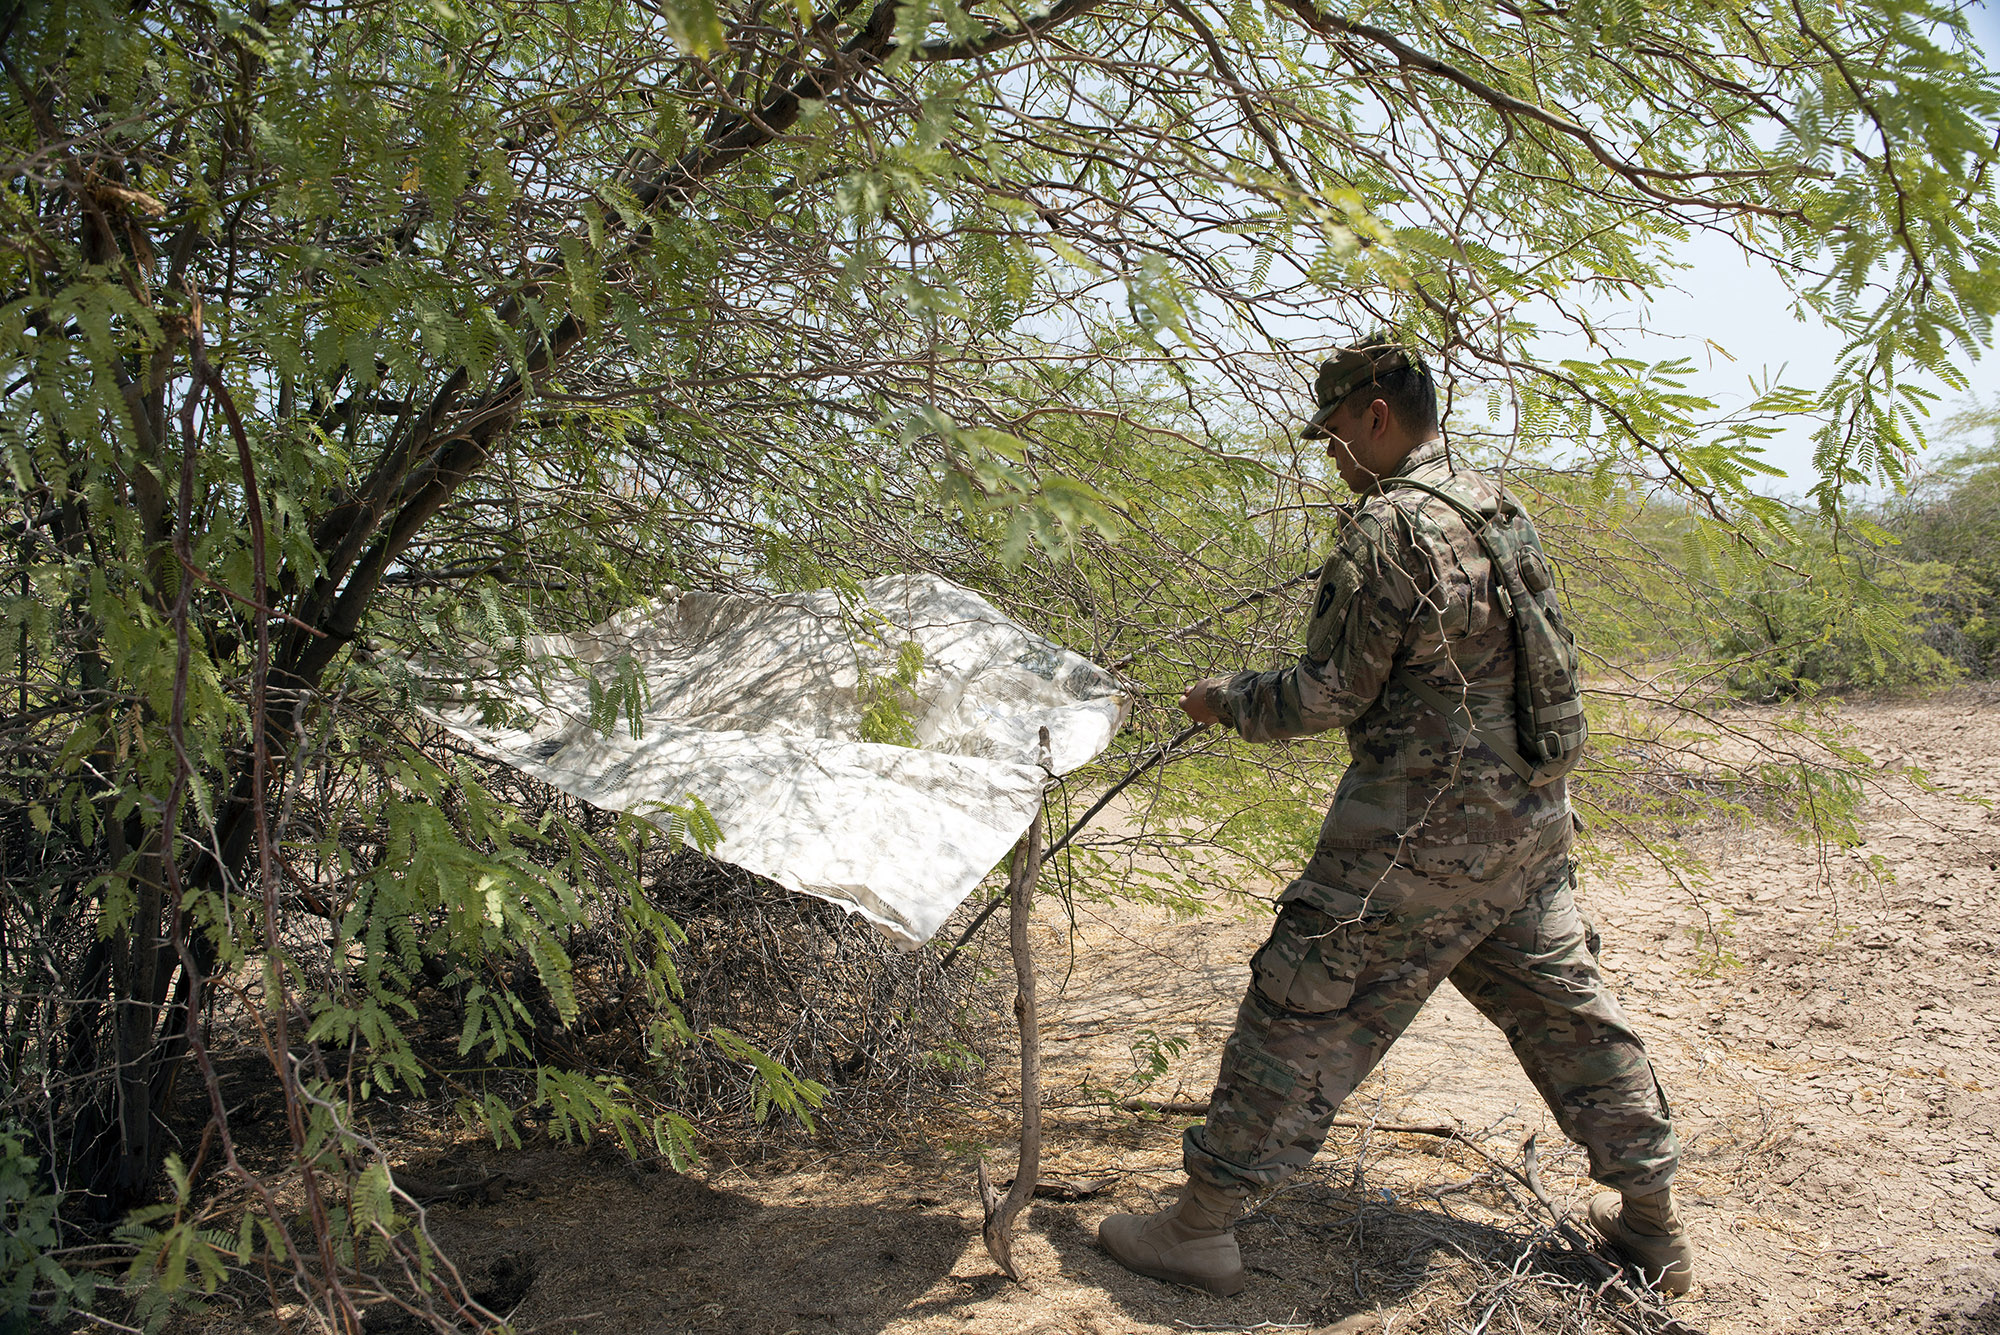 U.S. Army Pfc. Jonathan Galindo, a field artillery firefinder radar operator with 3rd Battalion, 133rd Field Artillery Regiment, Texas National Guard, uses his evasion chart and 550 cord to create a shaded shelter during a survival skills training on Camp Lemonnier, Djibouti, Oct. 13, 2018. During this training, Galindo completed various tasks such as constructing a shelter, finding alternative water sources and signaling for rescue. (U.S. Air National Guard photo by Master Sgt. Sarah Mattison)